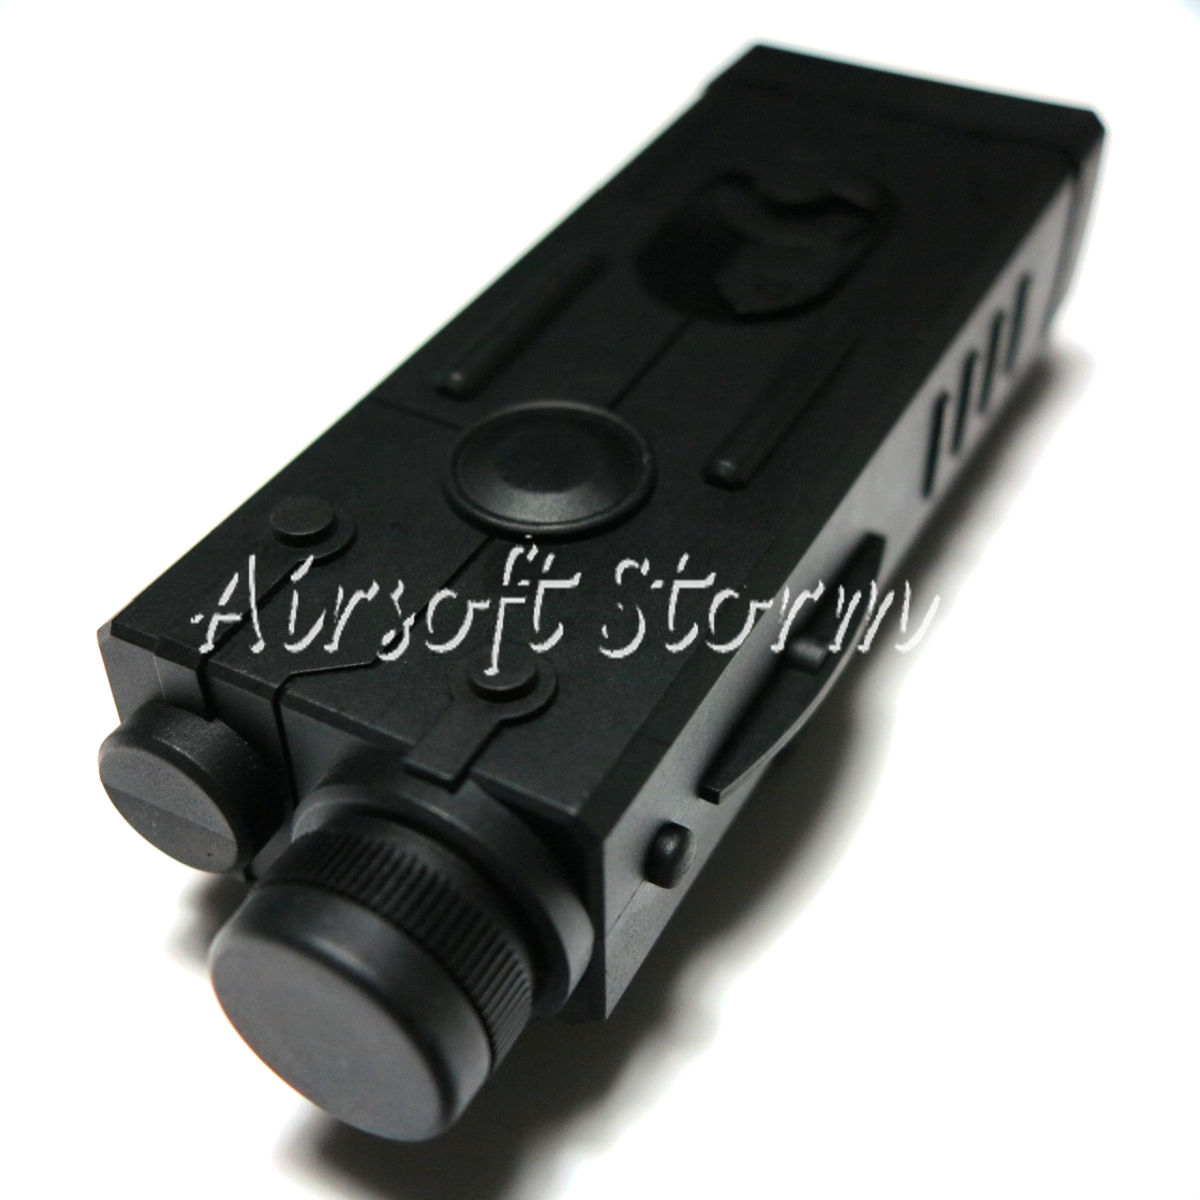 Airsoft Tactical Gear CYMA MP5 PEQ Style Battery Case Box (C.69) Black